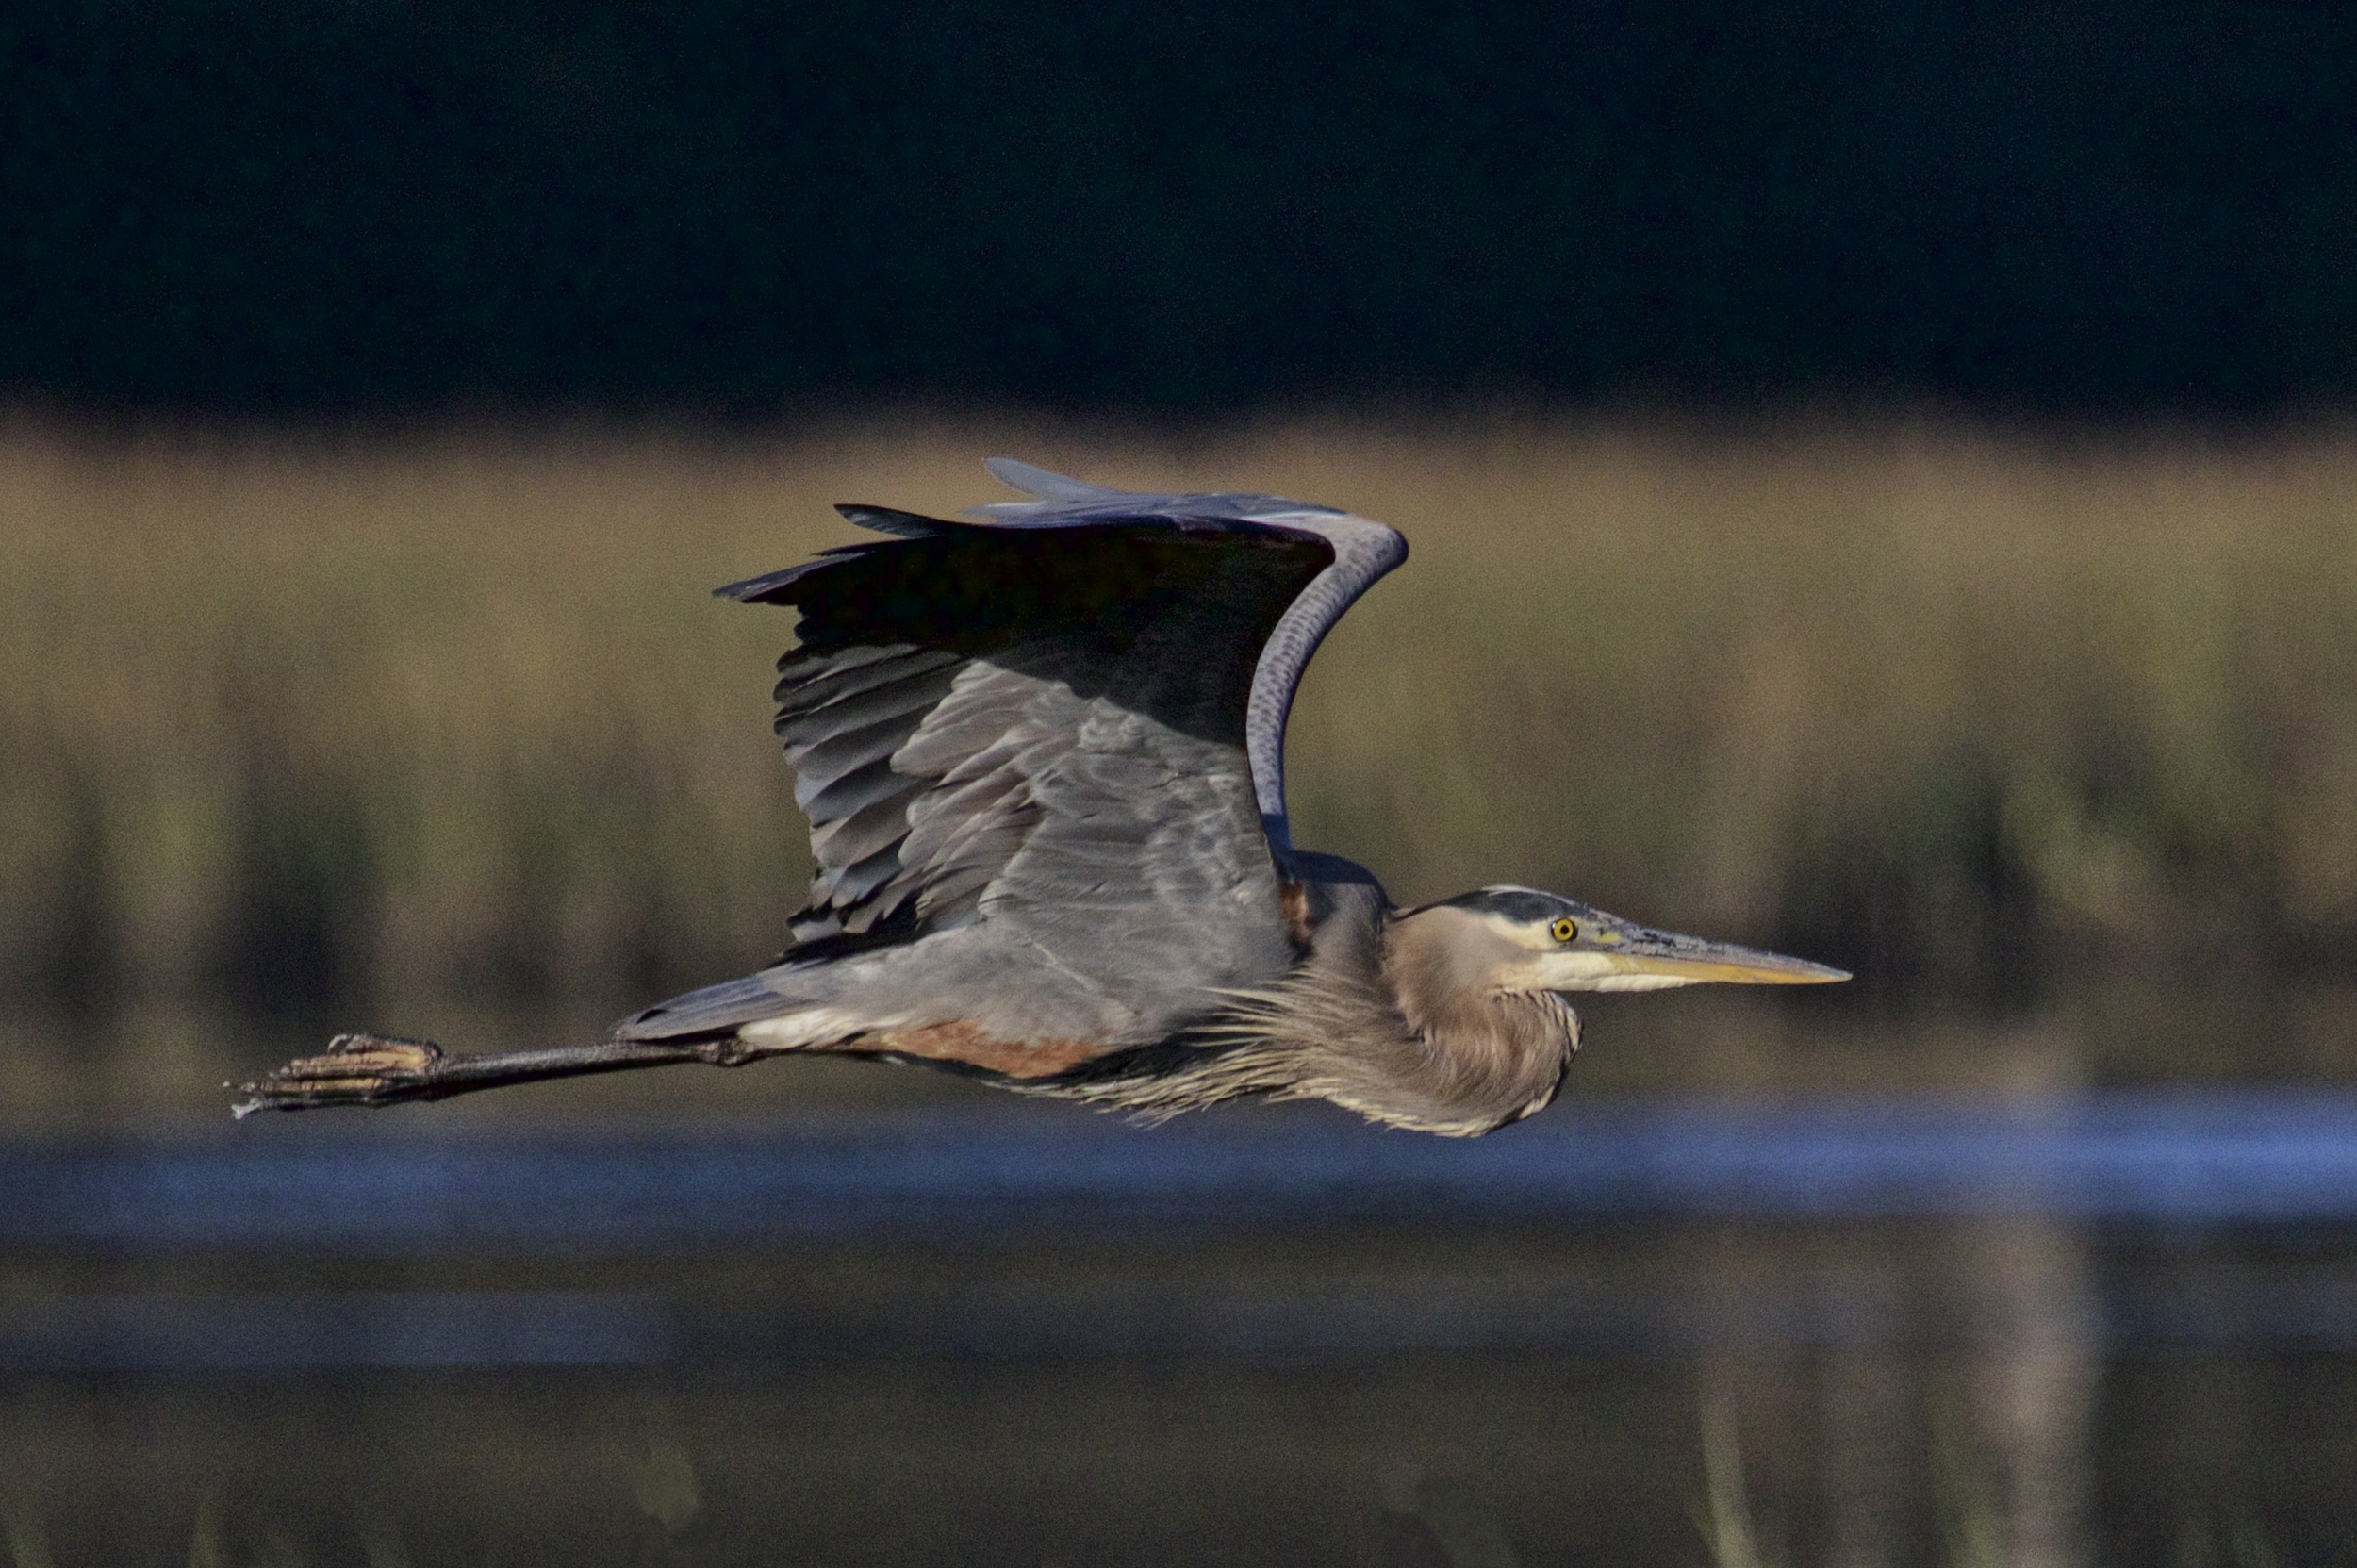 Even us Great Blue Herons get the blues sometimes...it will pass.